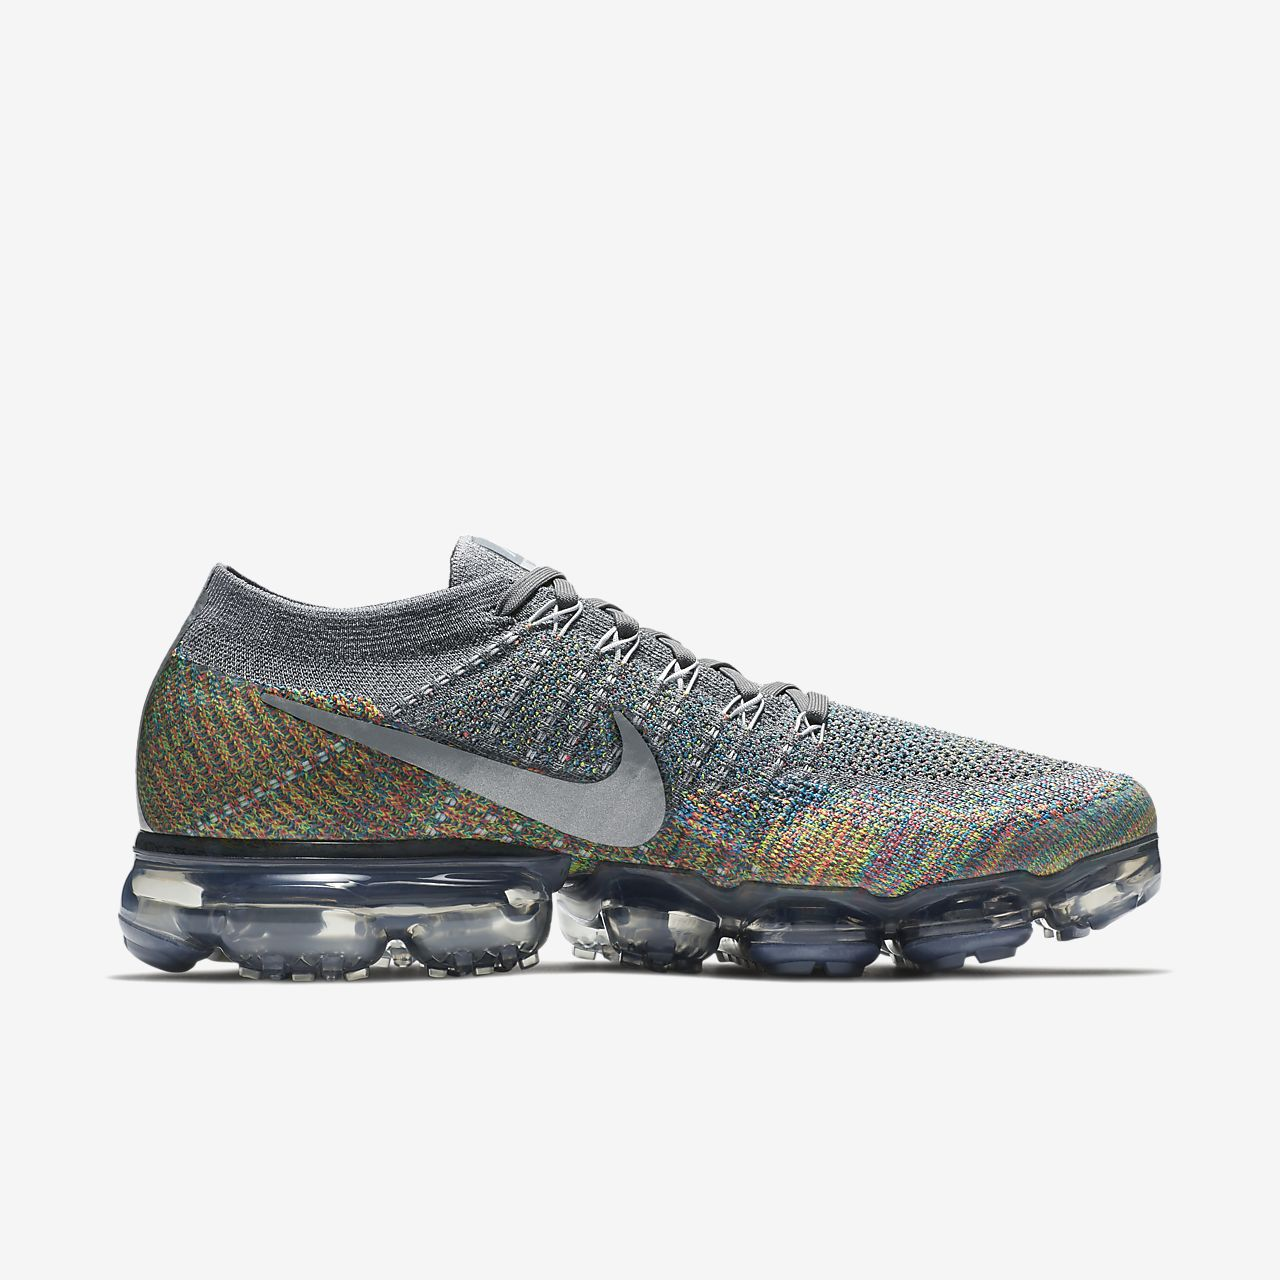 classic fit 8a8fb 438d8 ... Chaussure Nike Air VaporMax Flyknit pour Homme